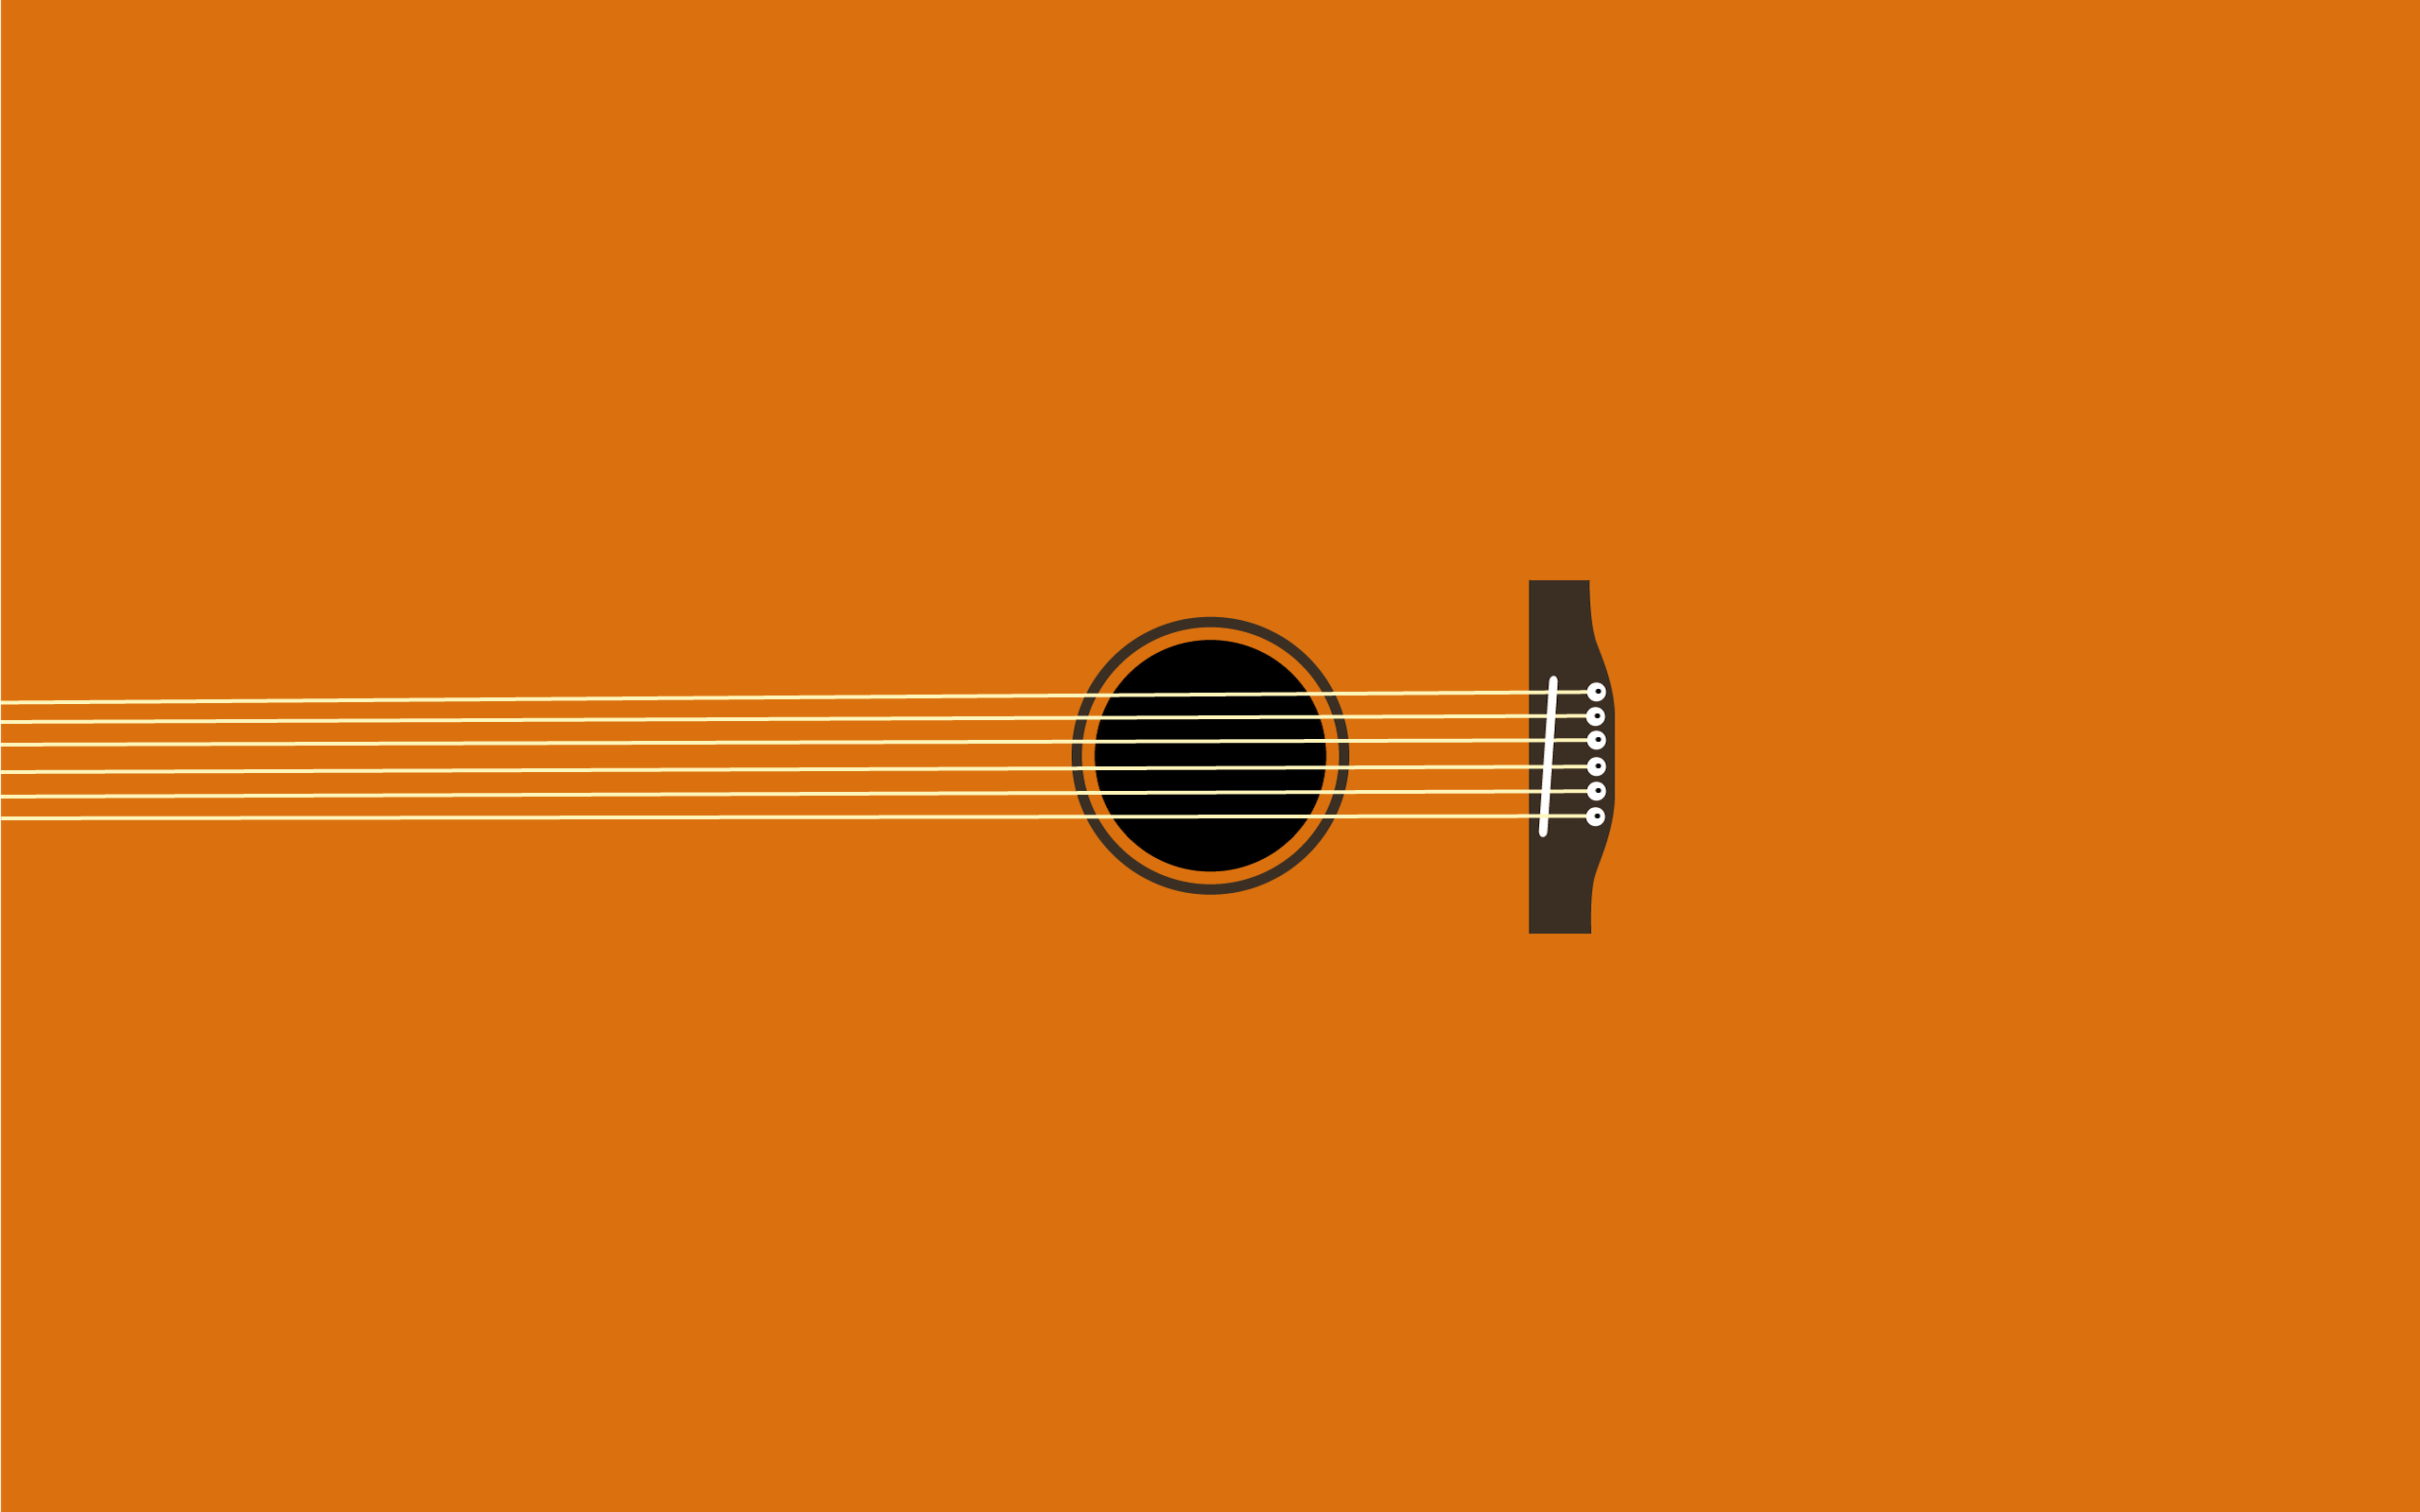 simpledesktops minimalismo pinterest guitars wallpaper